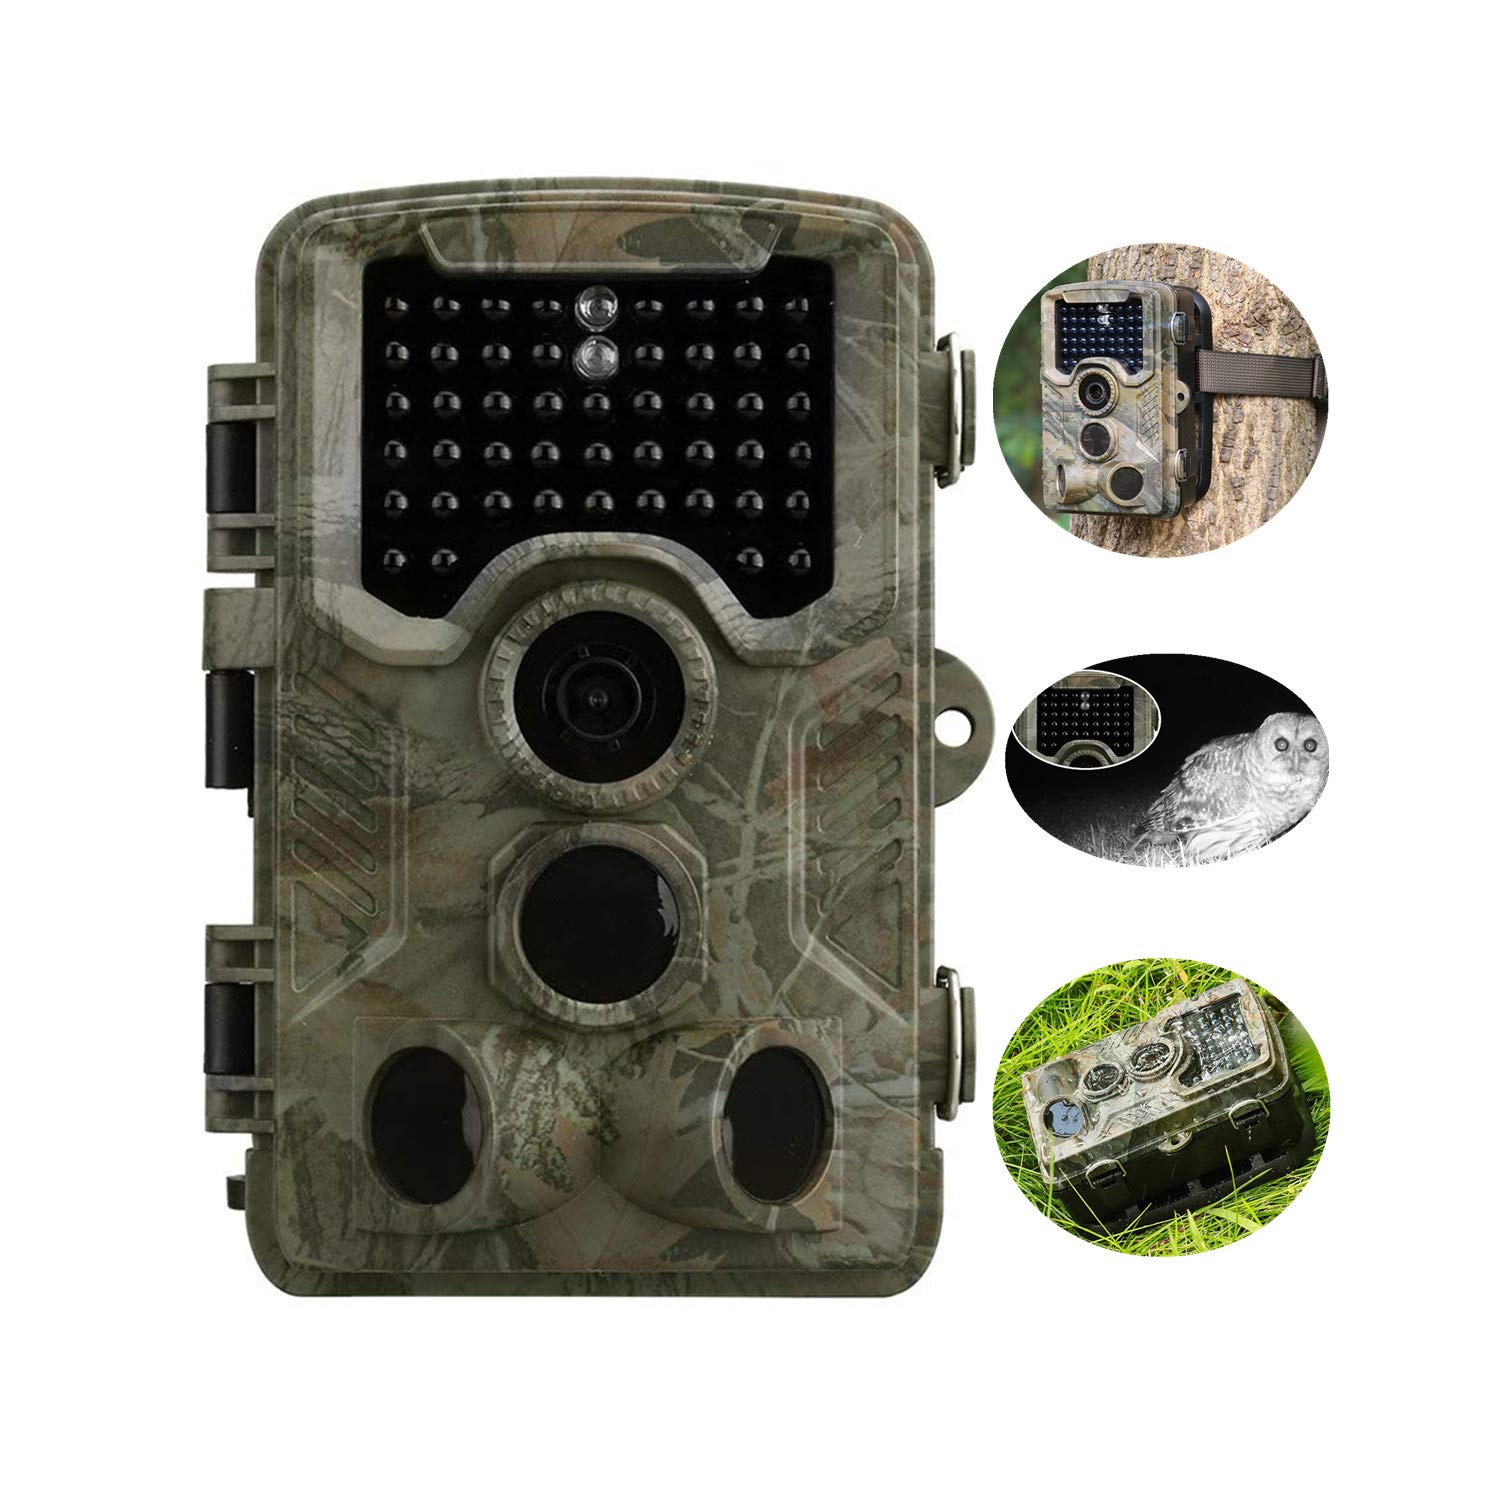 Trail Camera 1080P 12MP Wildlife Camera Motion Activated Night Vision 20m with 2.4'' LCD Display IP56 Waterproof Design for Wildlife Hunting and Home Security by MPNETDEAL